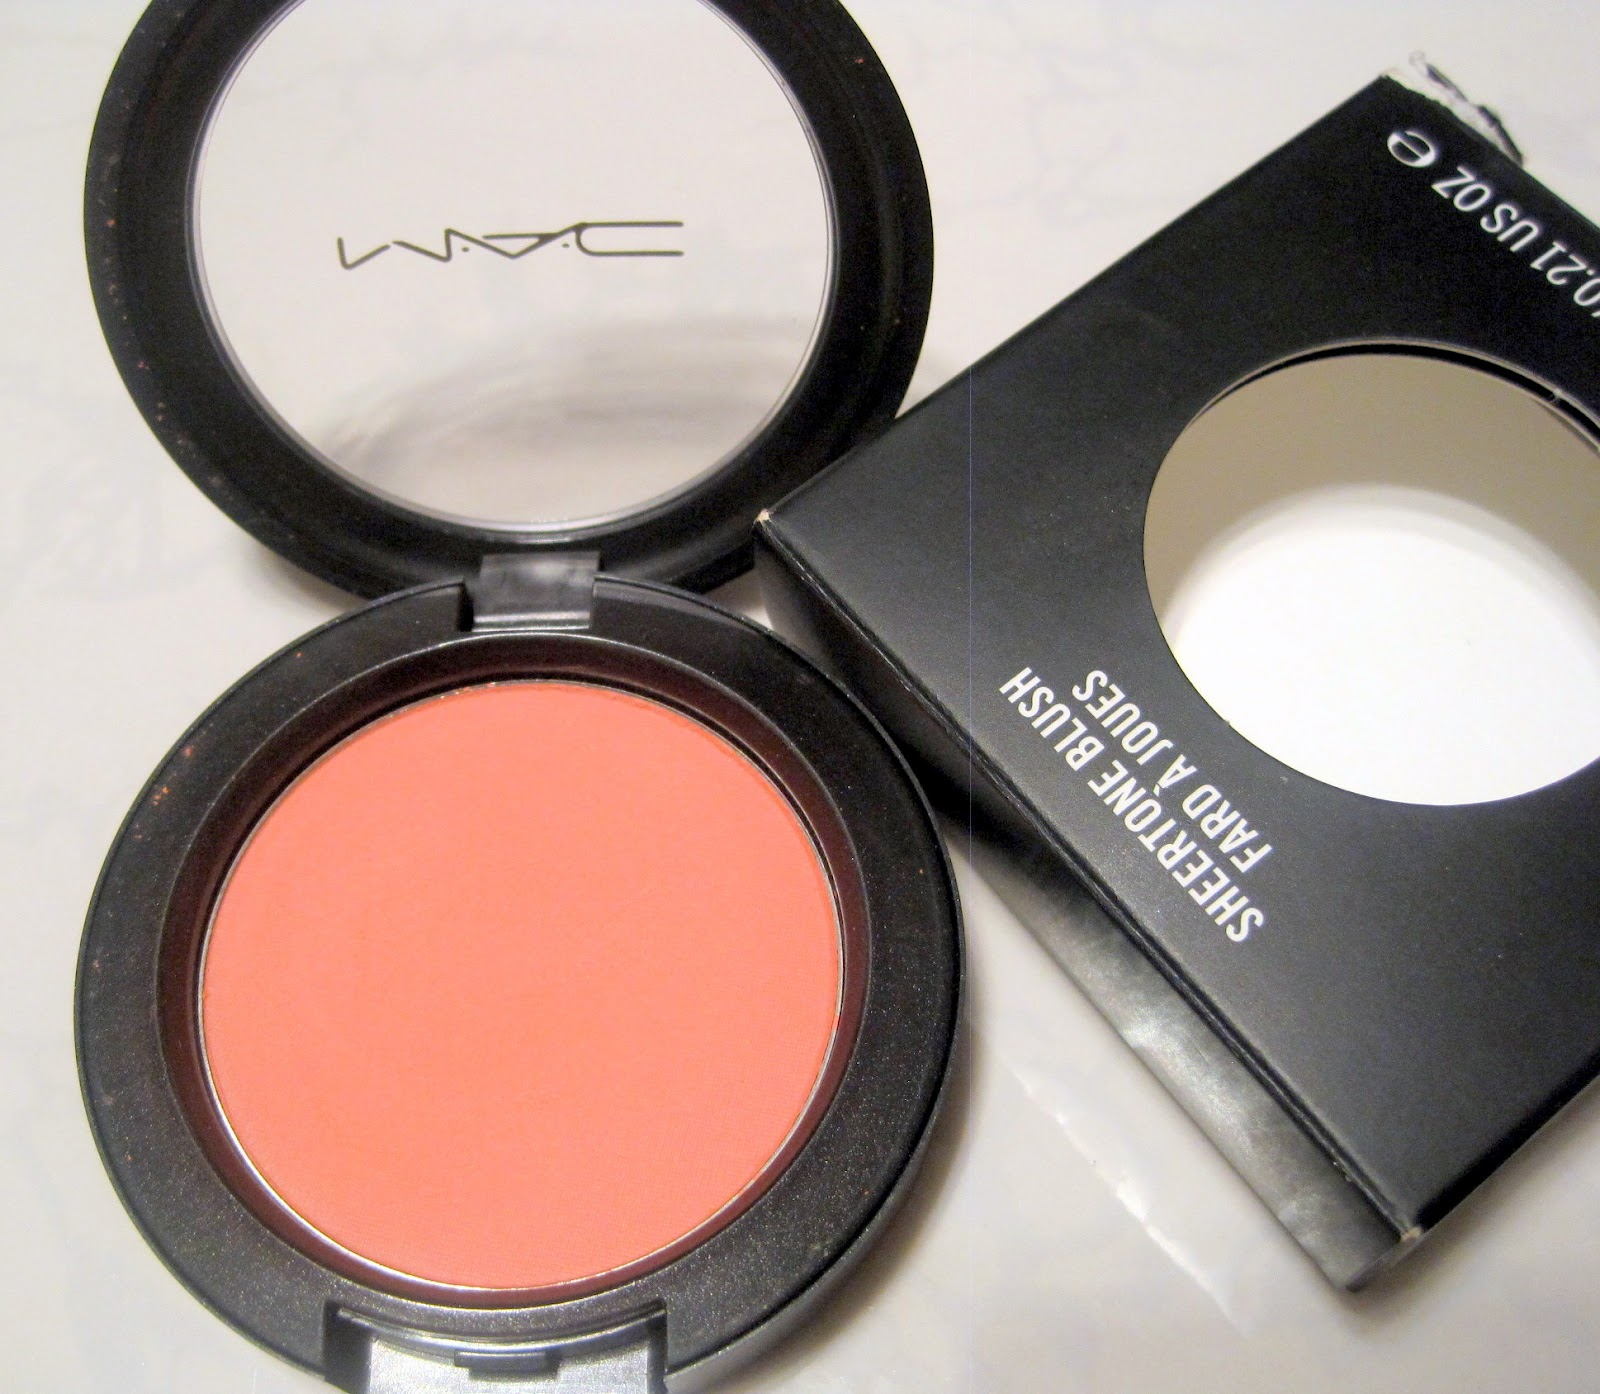 Connu Everything I Love: MAC SHEERTONE BLUSH IN PEACHES: REVIEW AND SWATCHES ZV99